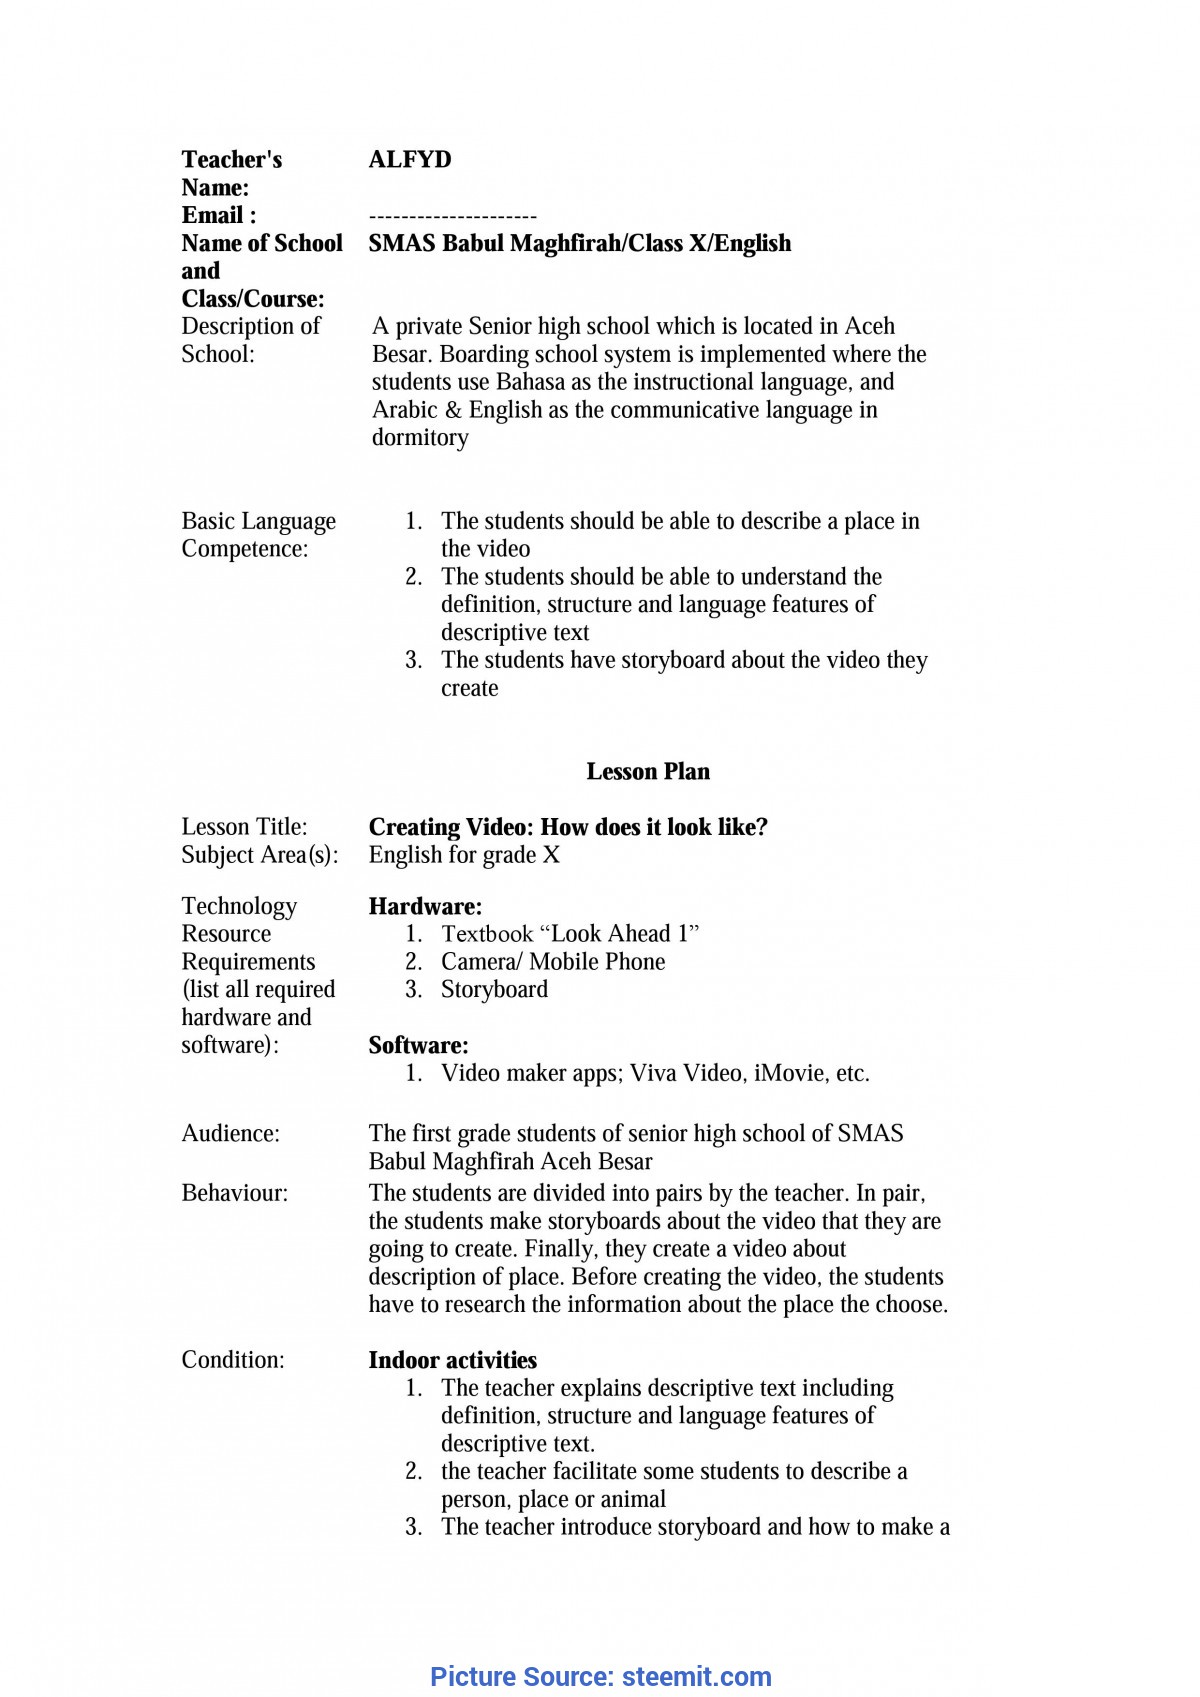 Simple How To Make A Lesson Plan For Senior High School My Lesson Plan: Using Storyboard And Video Creation In Learnin